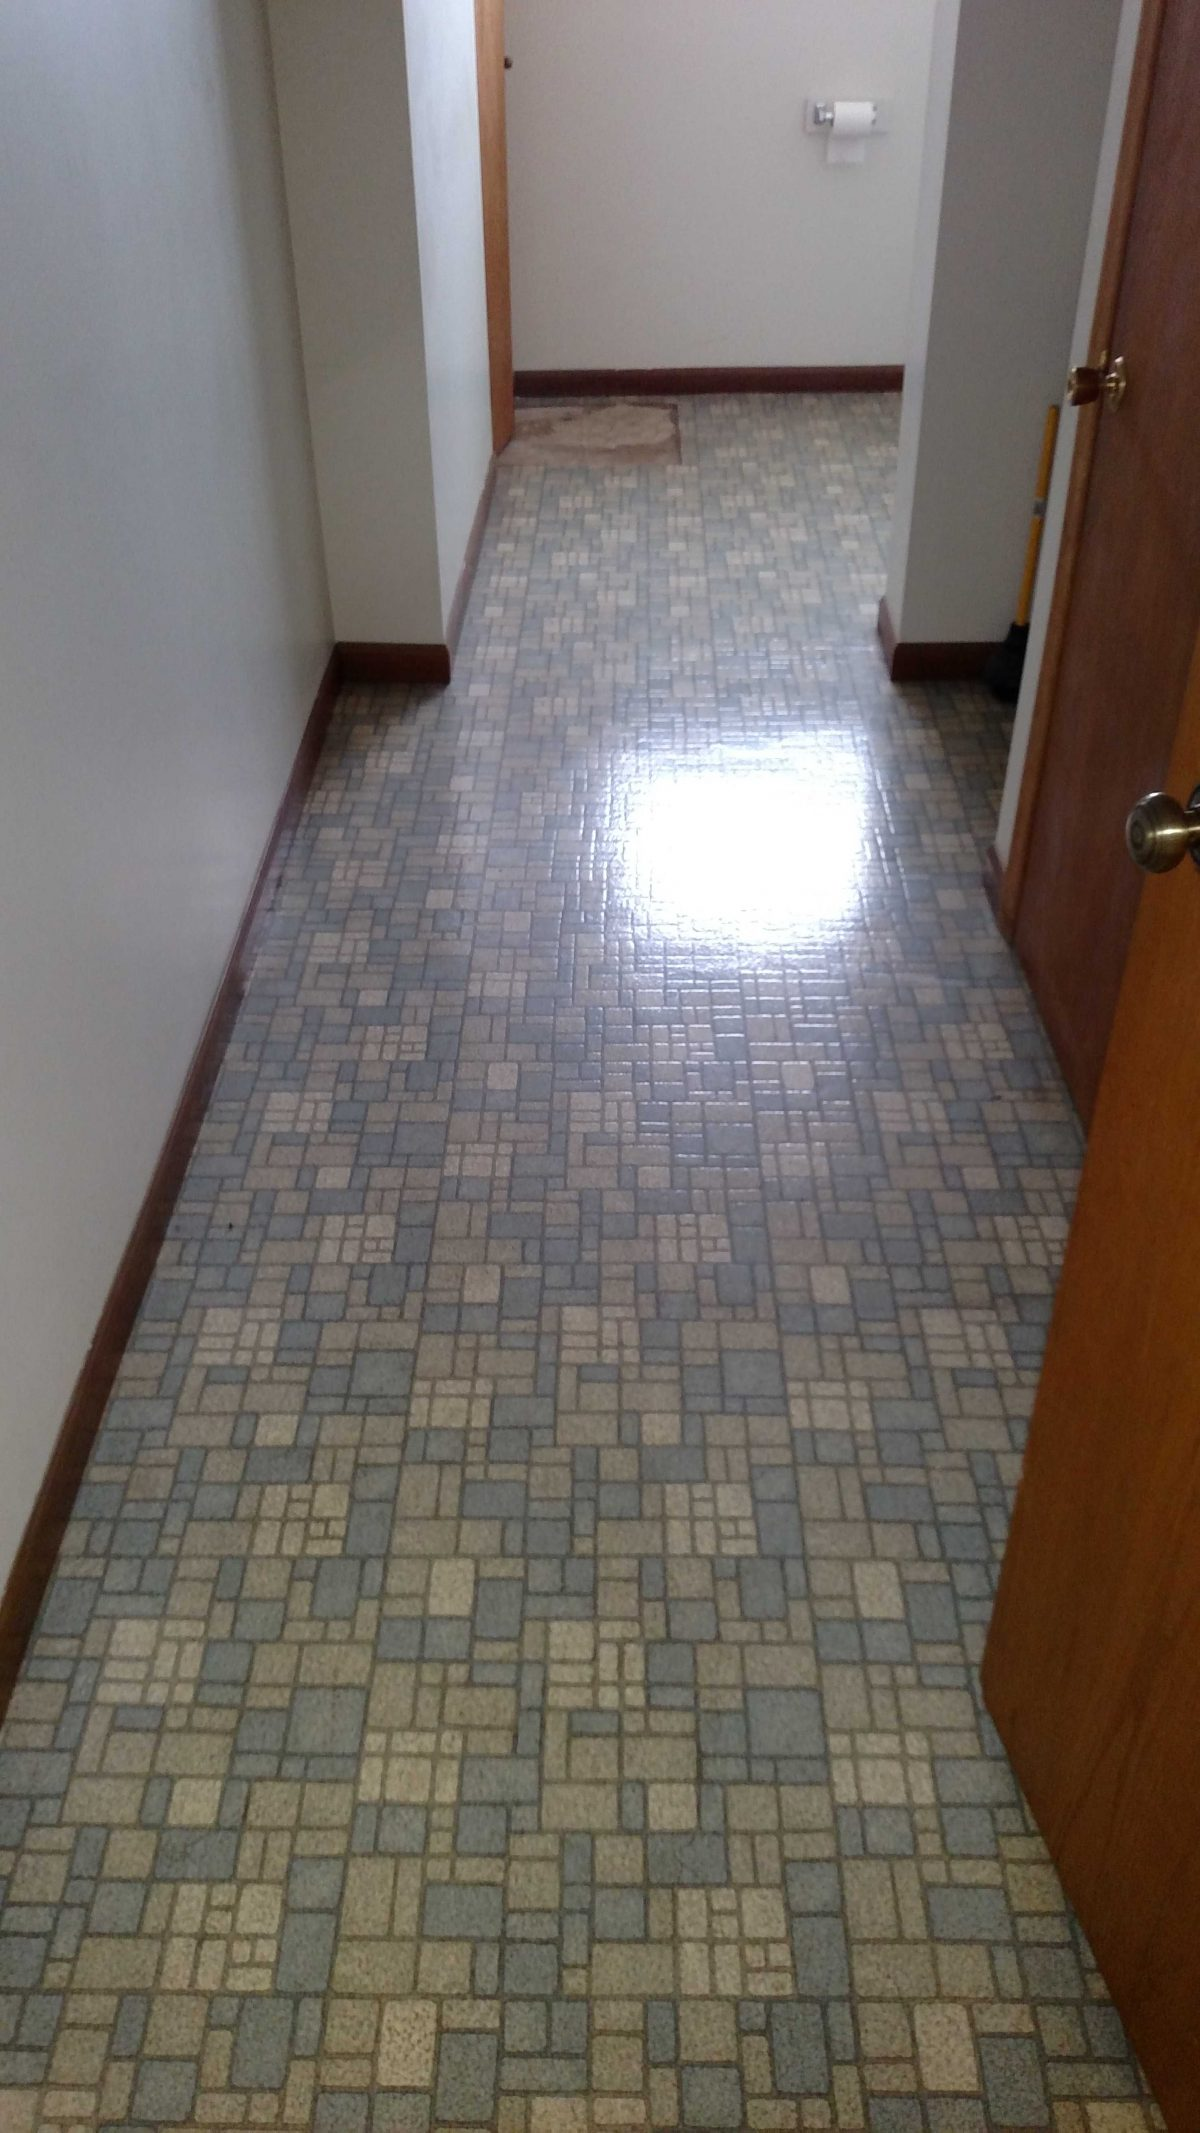 Ctn Before Linoleum To Be Removed